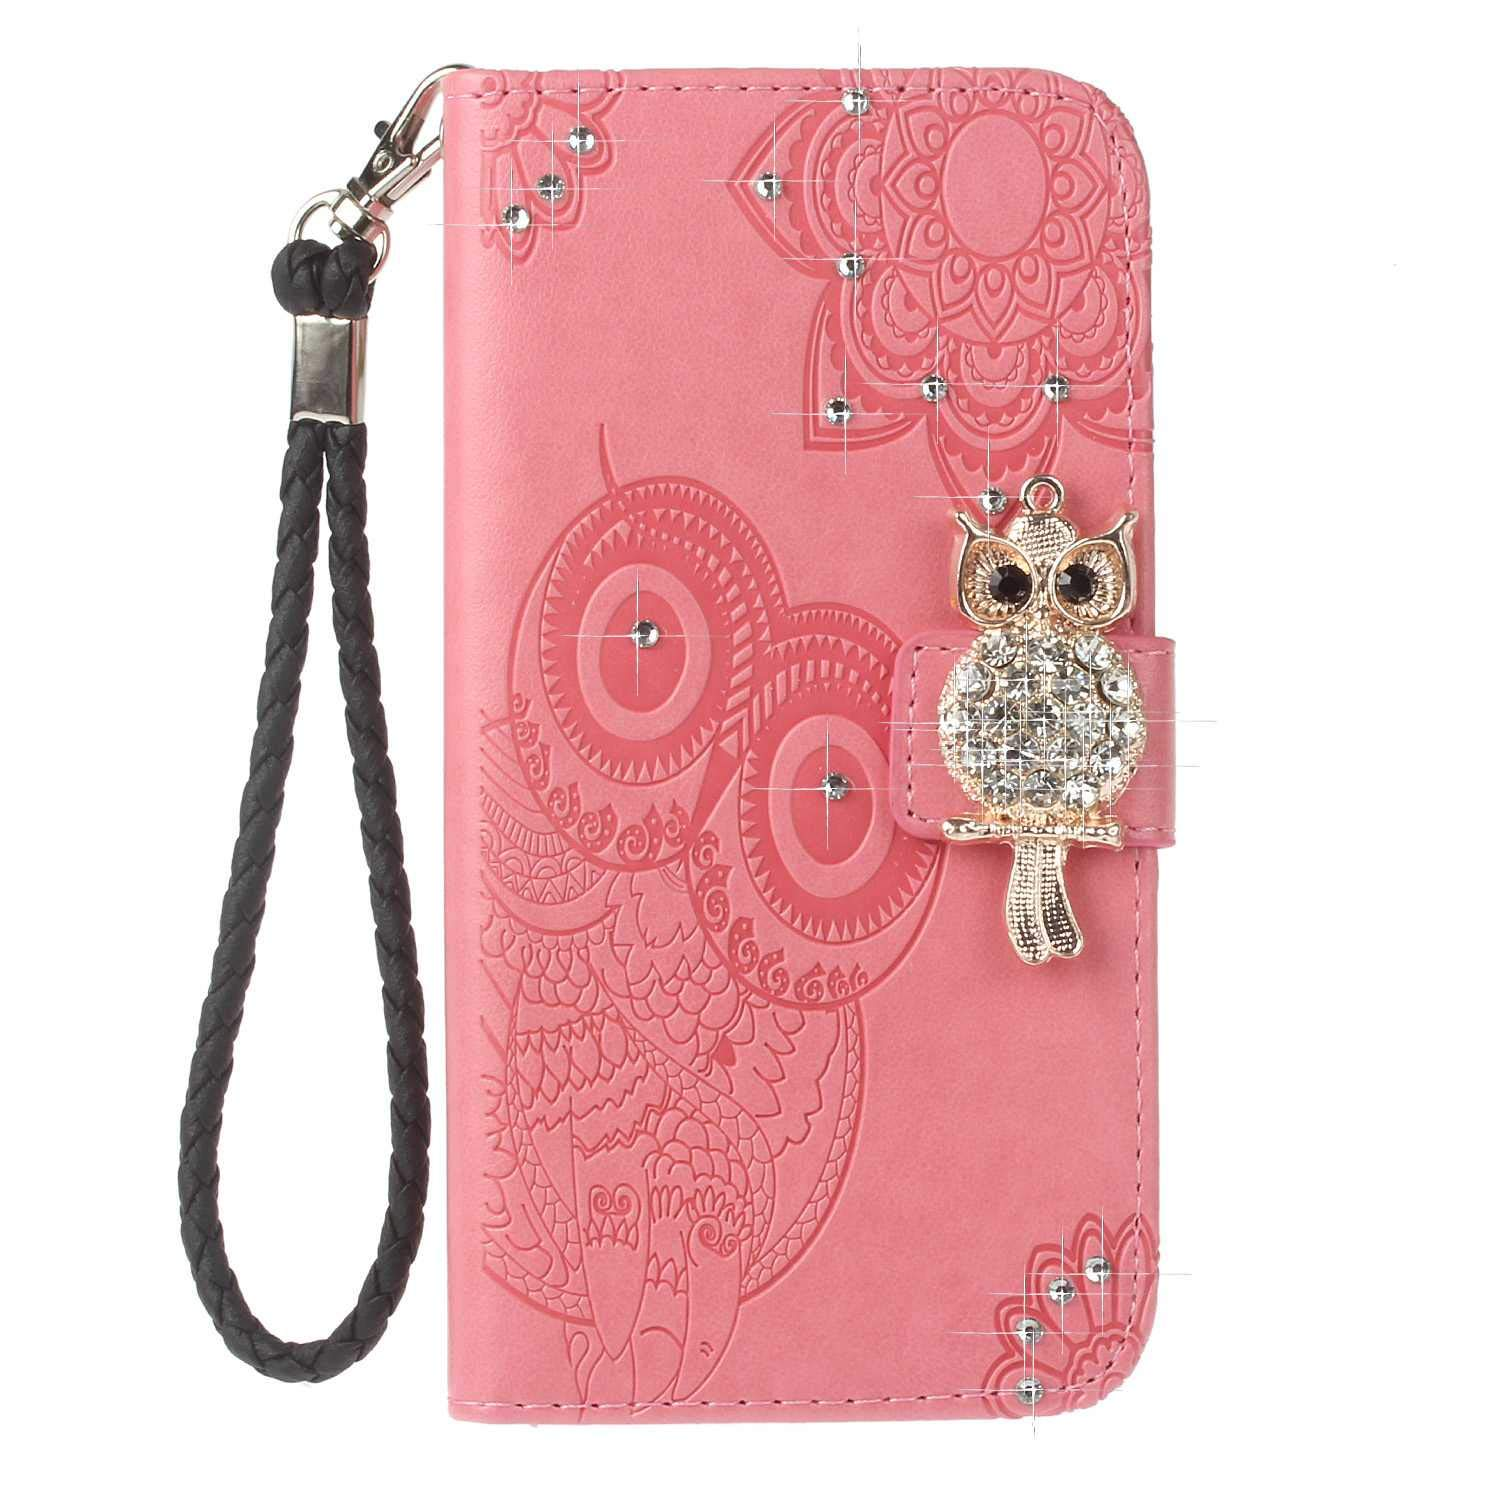 Bear Village iPhone X/iPhone Xs Case, Leather Case with Wrist Strap and Credit Card Slot, Owl Magnetic Closure Shockproof Cover for Apple iPhone X/iPhone Xs, Pink by Bear Village